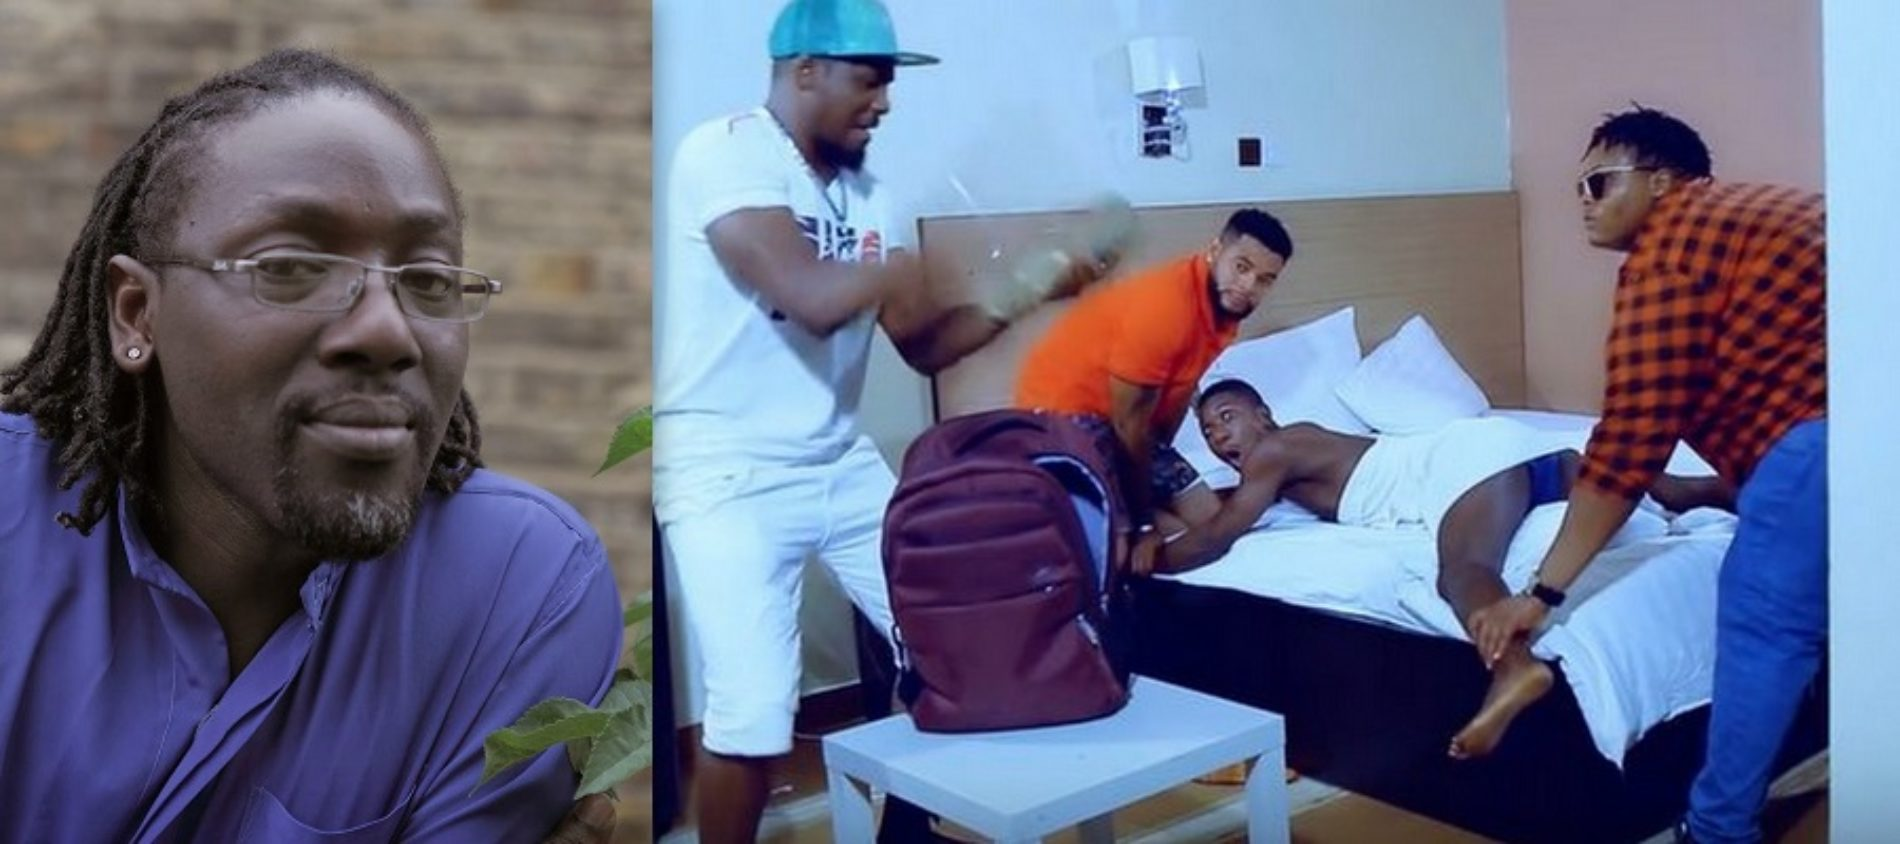 Comedian Ogusbaba antigay comedy sketch goes viral, provokes outrage from Nigerian LGBT